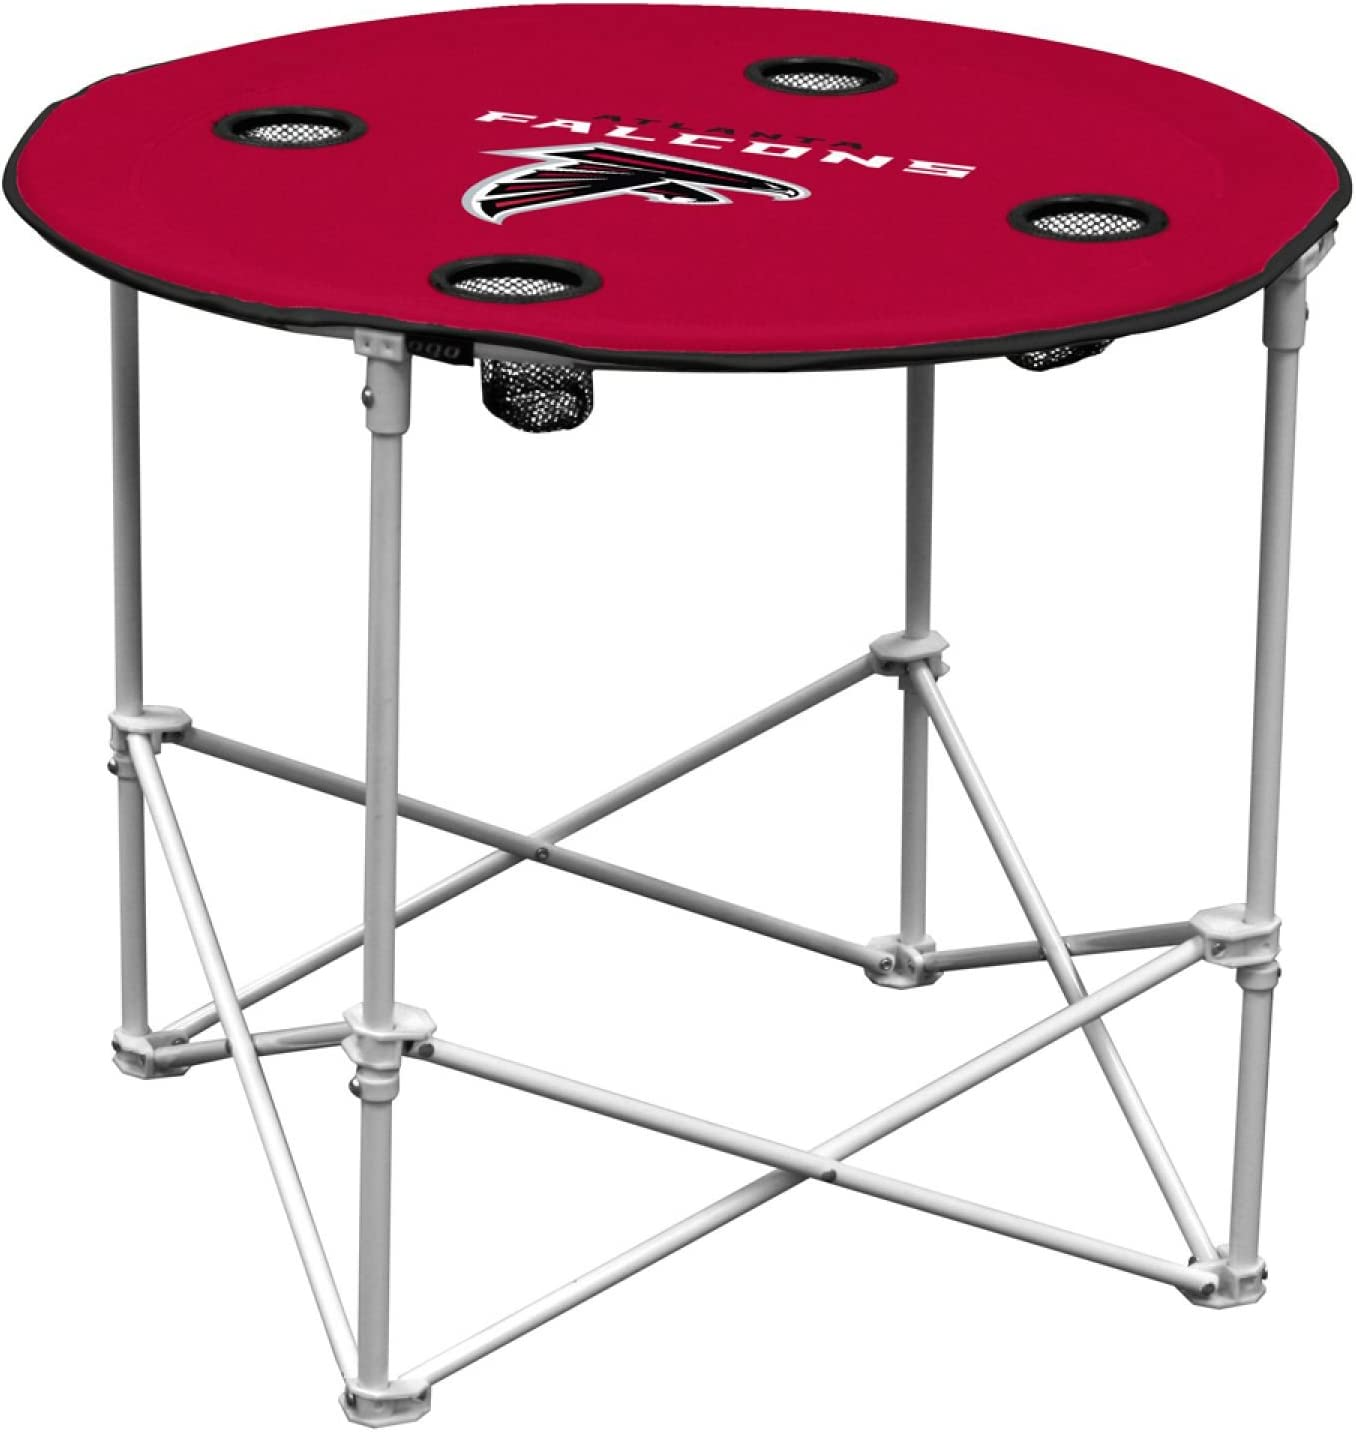 logobrands Round Table with 4 Cup Holders and Carry Bag